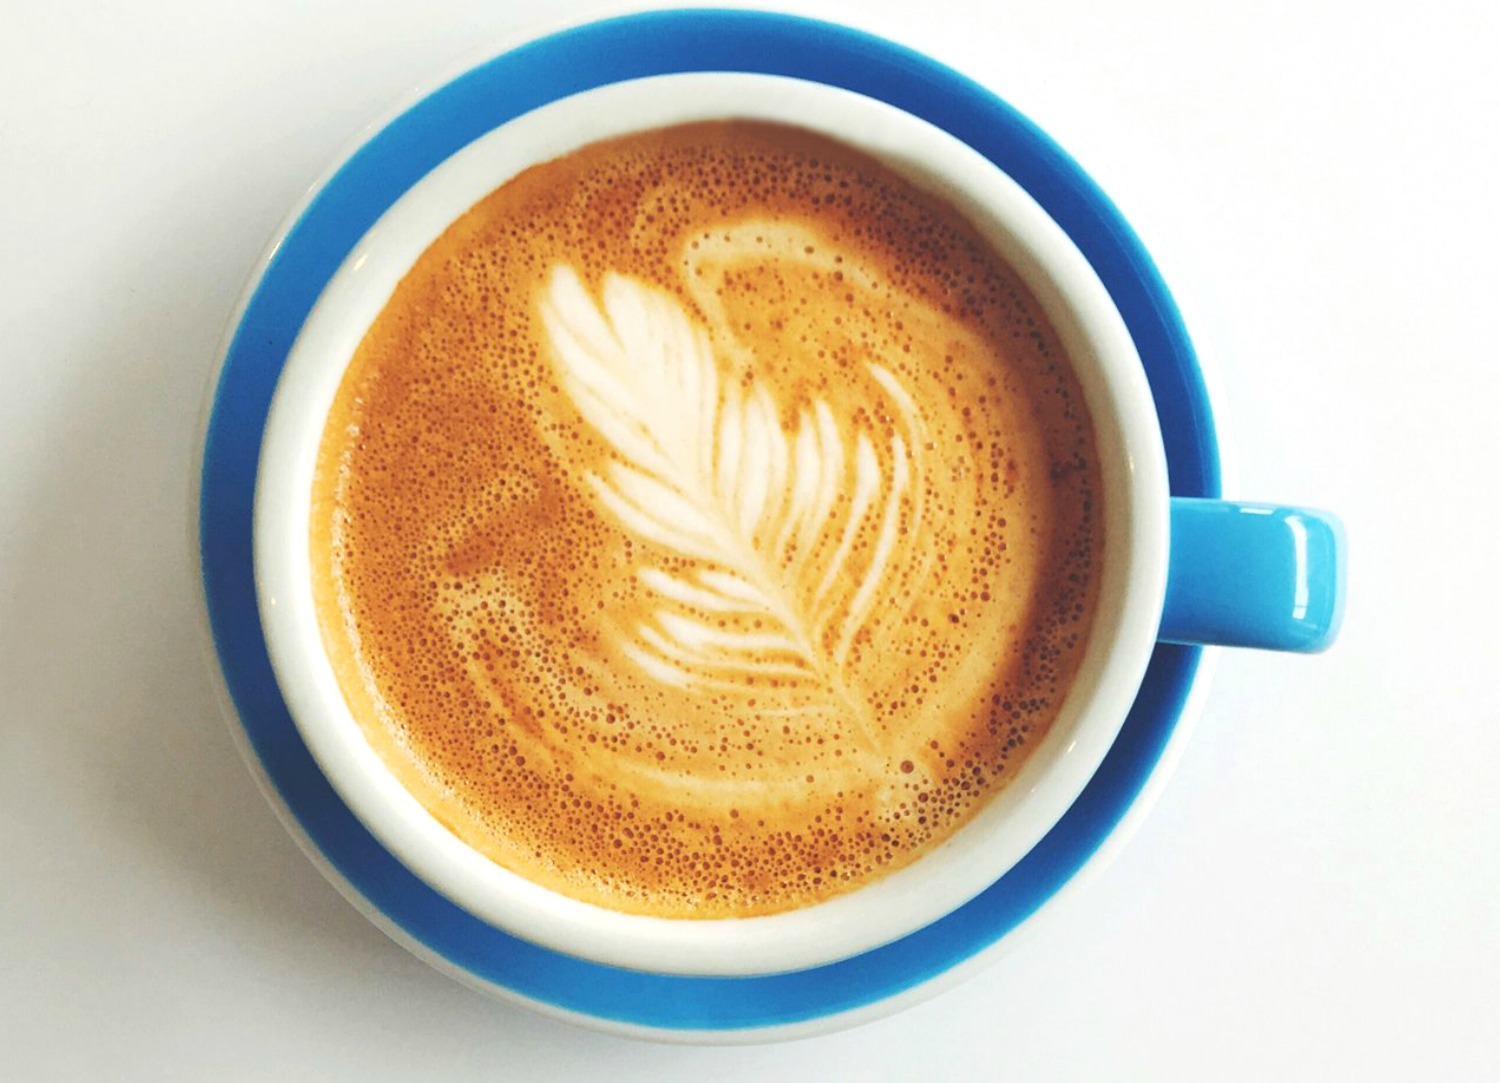 An artisan cup of coffee with leaf design in the foam